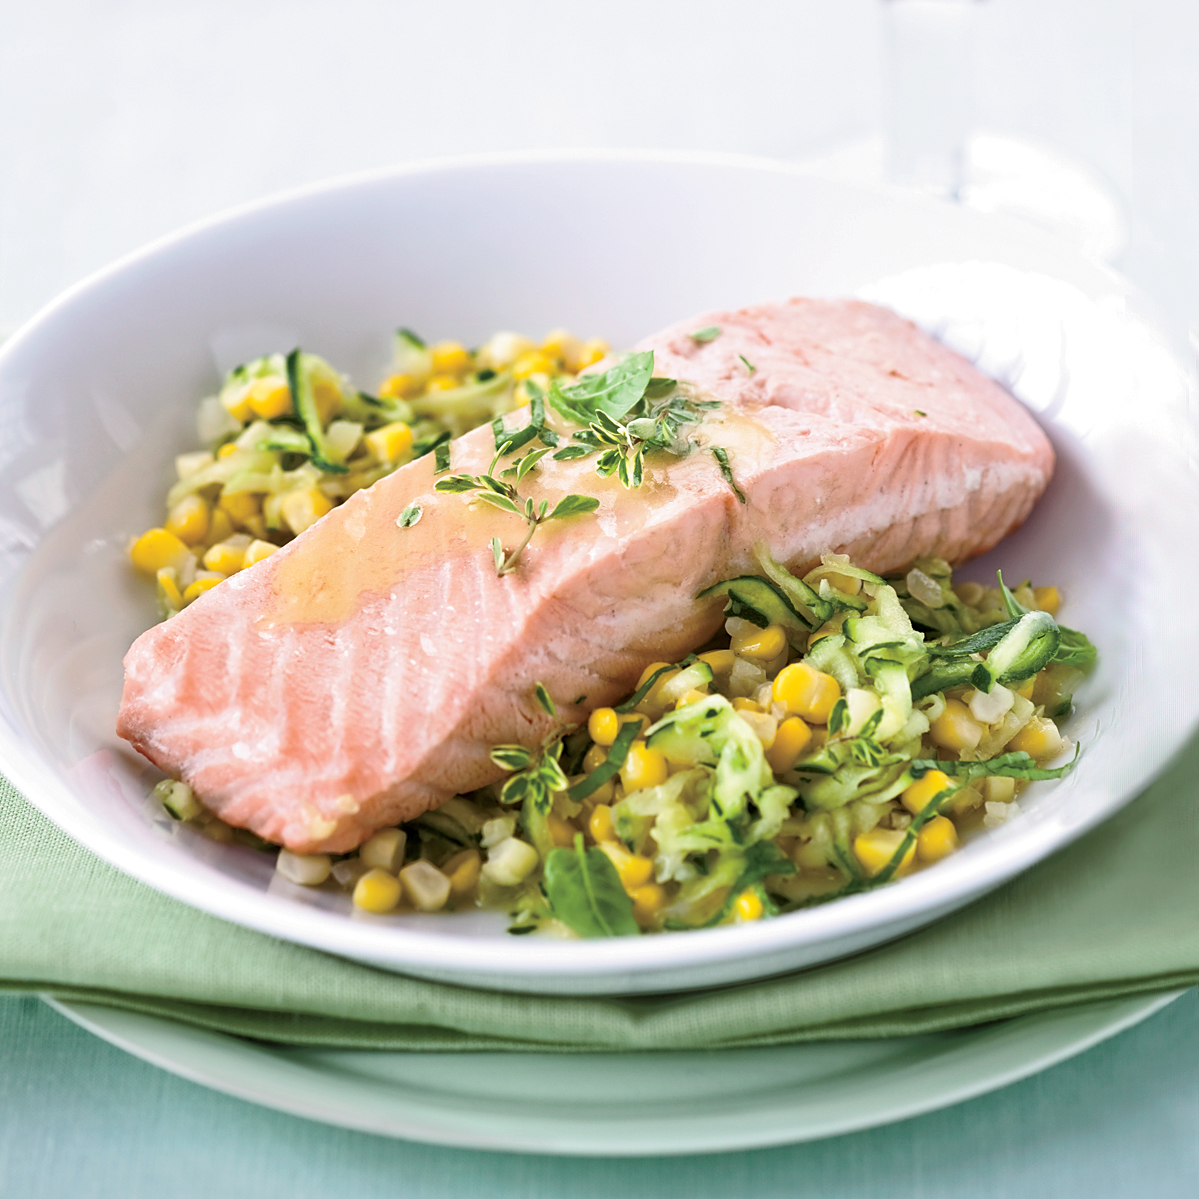 200909-r-poached-salmon-corn.jpg